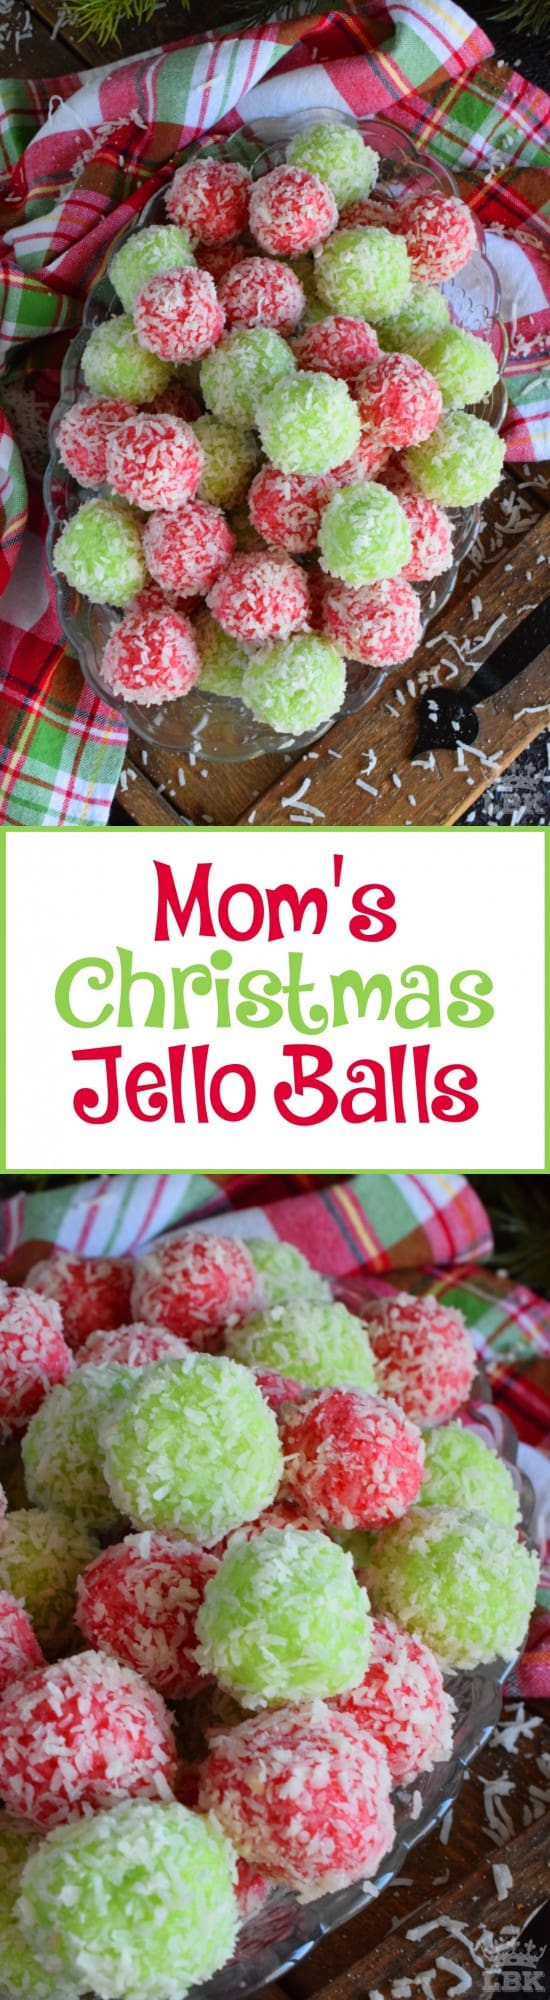 Mom's Christmas Jello Balls - No baking, no melting, and just one mixing bowl! Mom's Christmas Jello Balls are one of the easiest cookies you'll make this holiday season! #jello #coconut #balls #christmas #holiday #nobake #kids